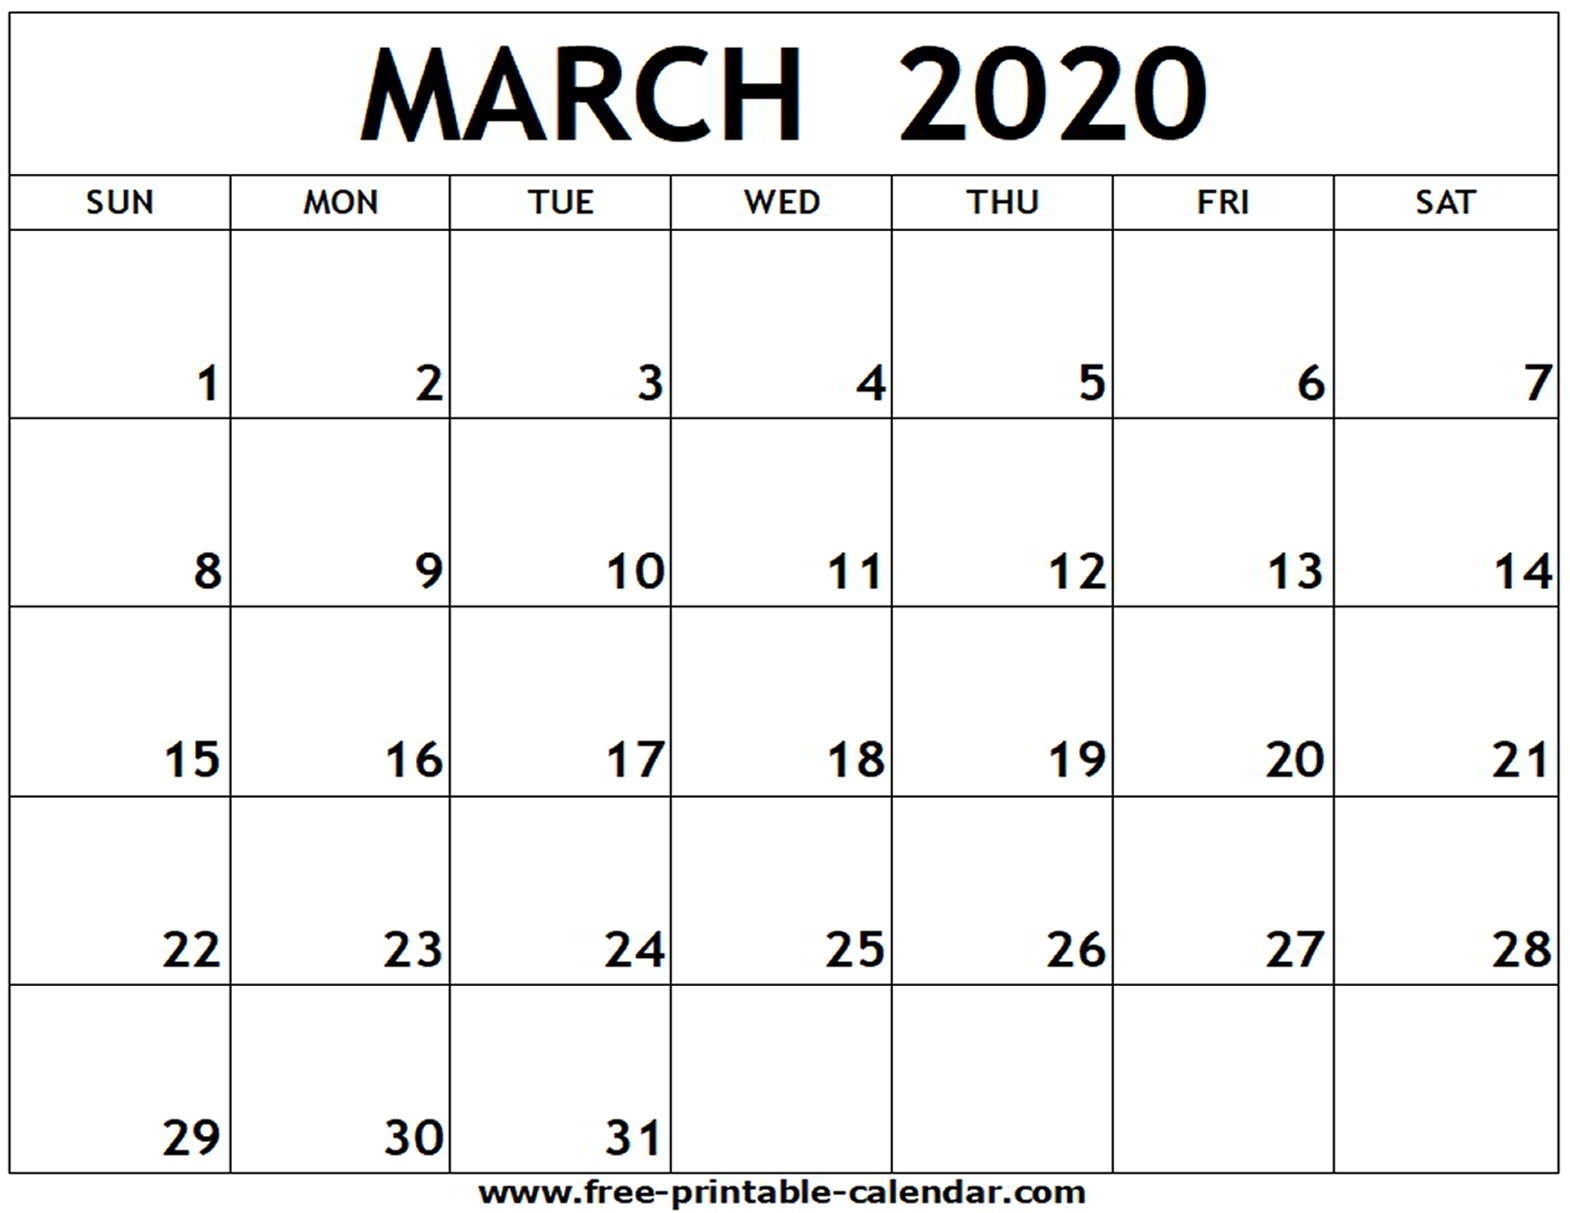 March 2020 Printable Calendar - Free-Printable-Calendar  2020 Printable Calendar By Month